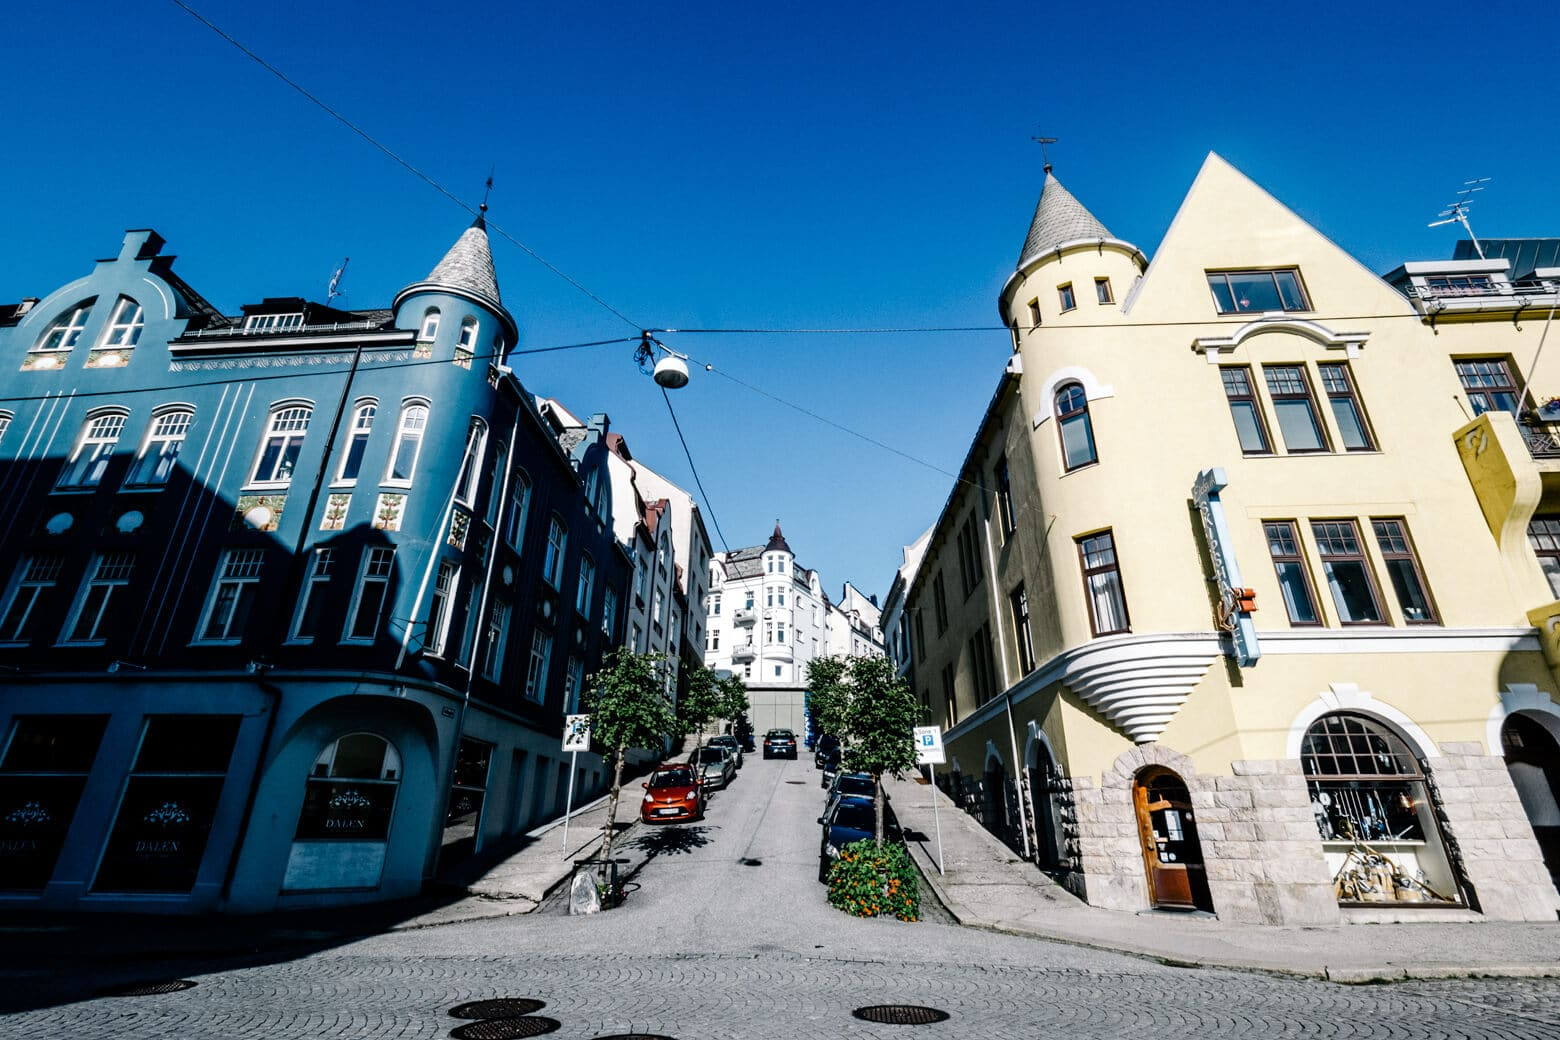 Hilly Streets of Alesund